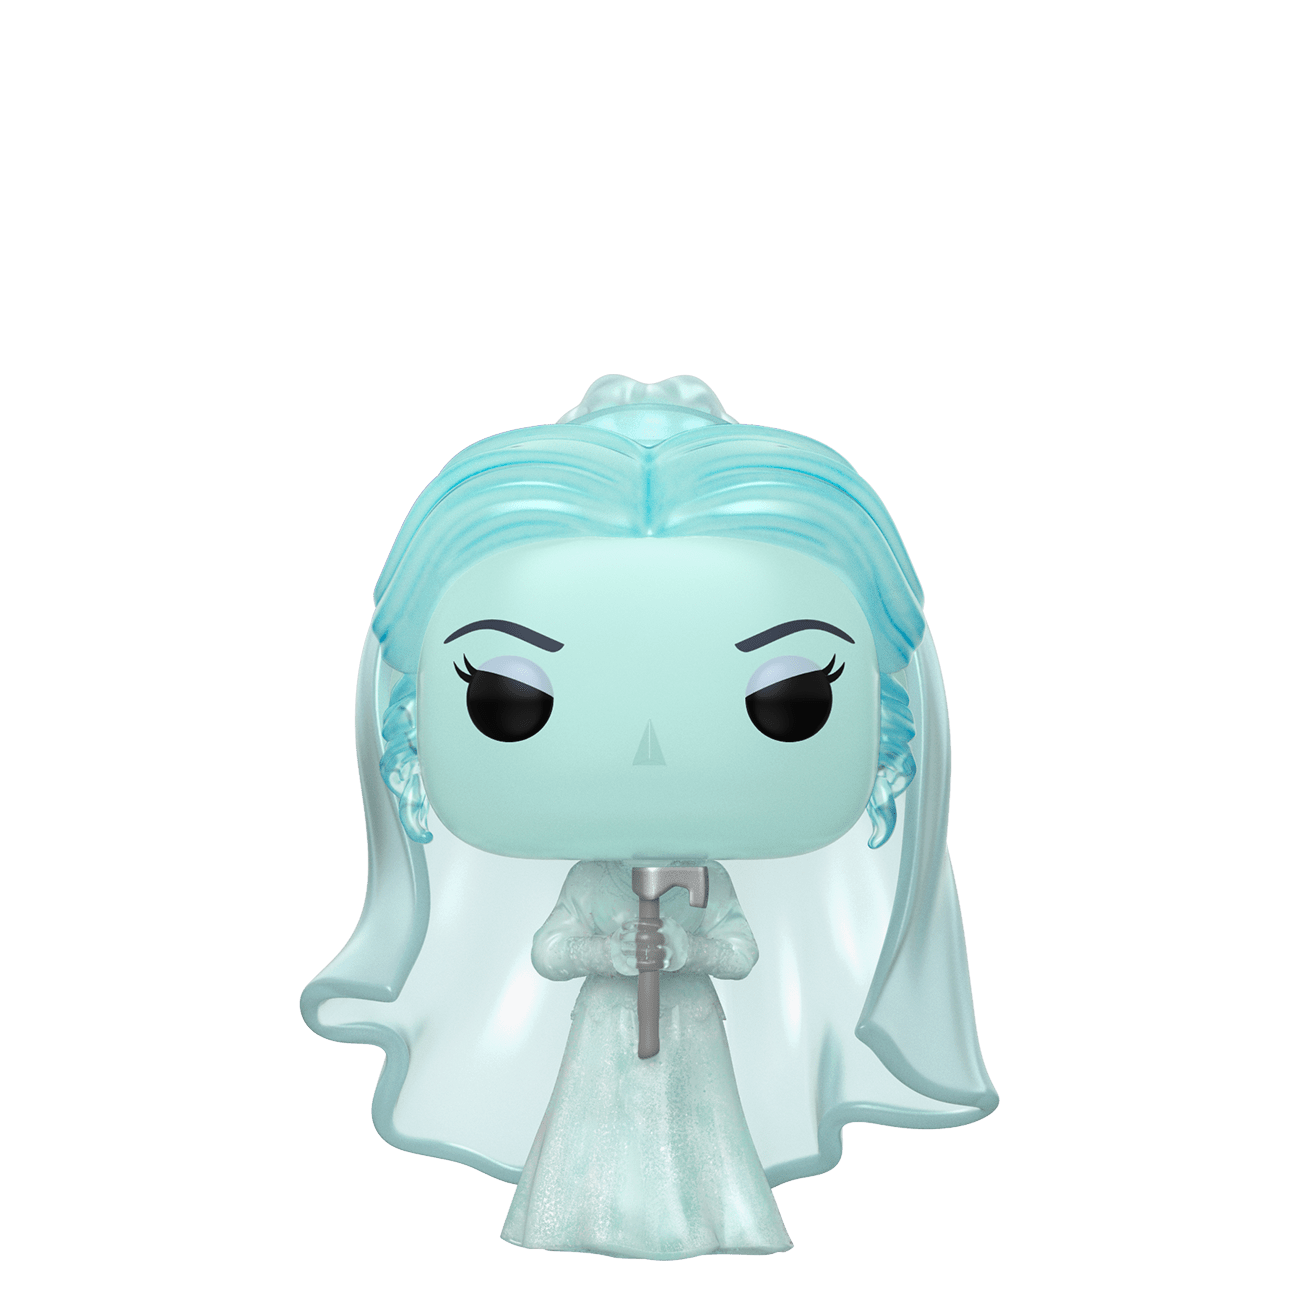 42150_HauntedMansion_Bride_POP_GLAM_WEB.png